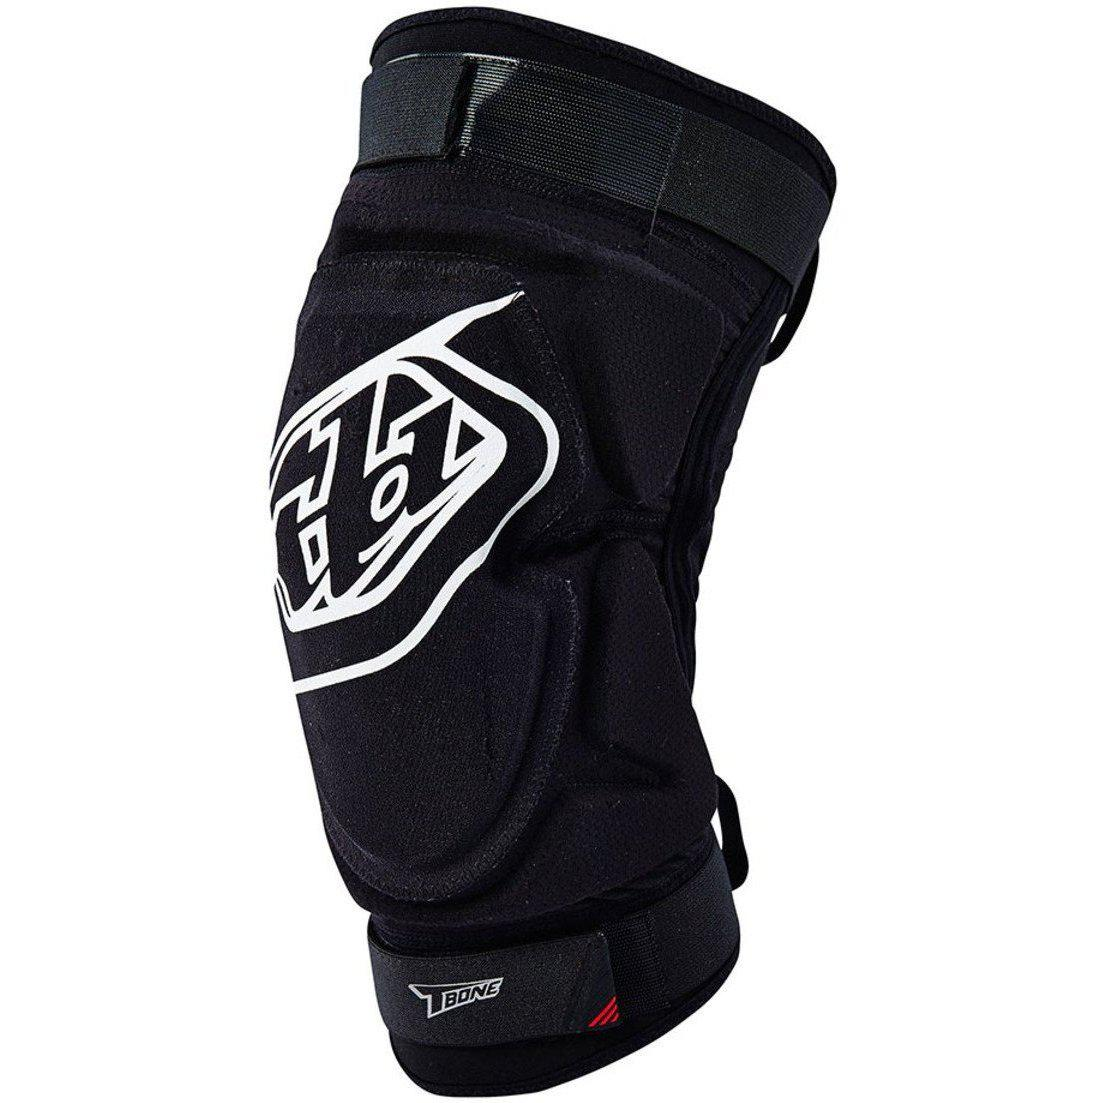 Troy Lee Designs-Troy Lee Designs T-Bone Lightweight Knee Guards-BLACK-XS-S-TLD543003221-saddleback-elite-performance-cycling